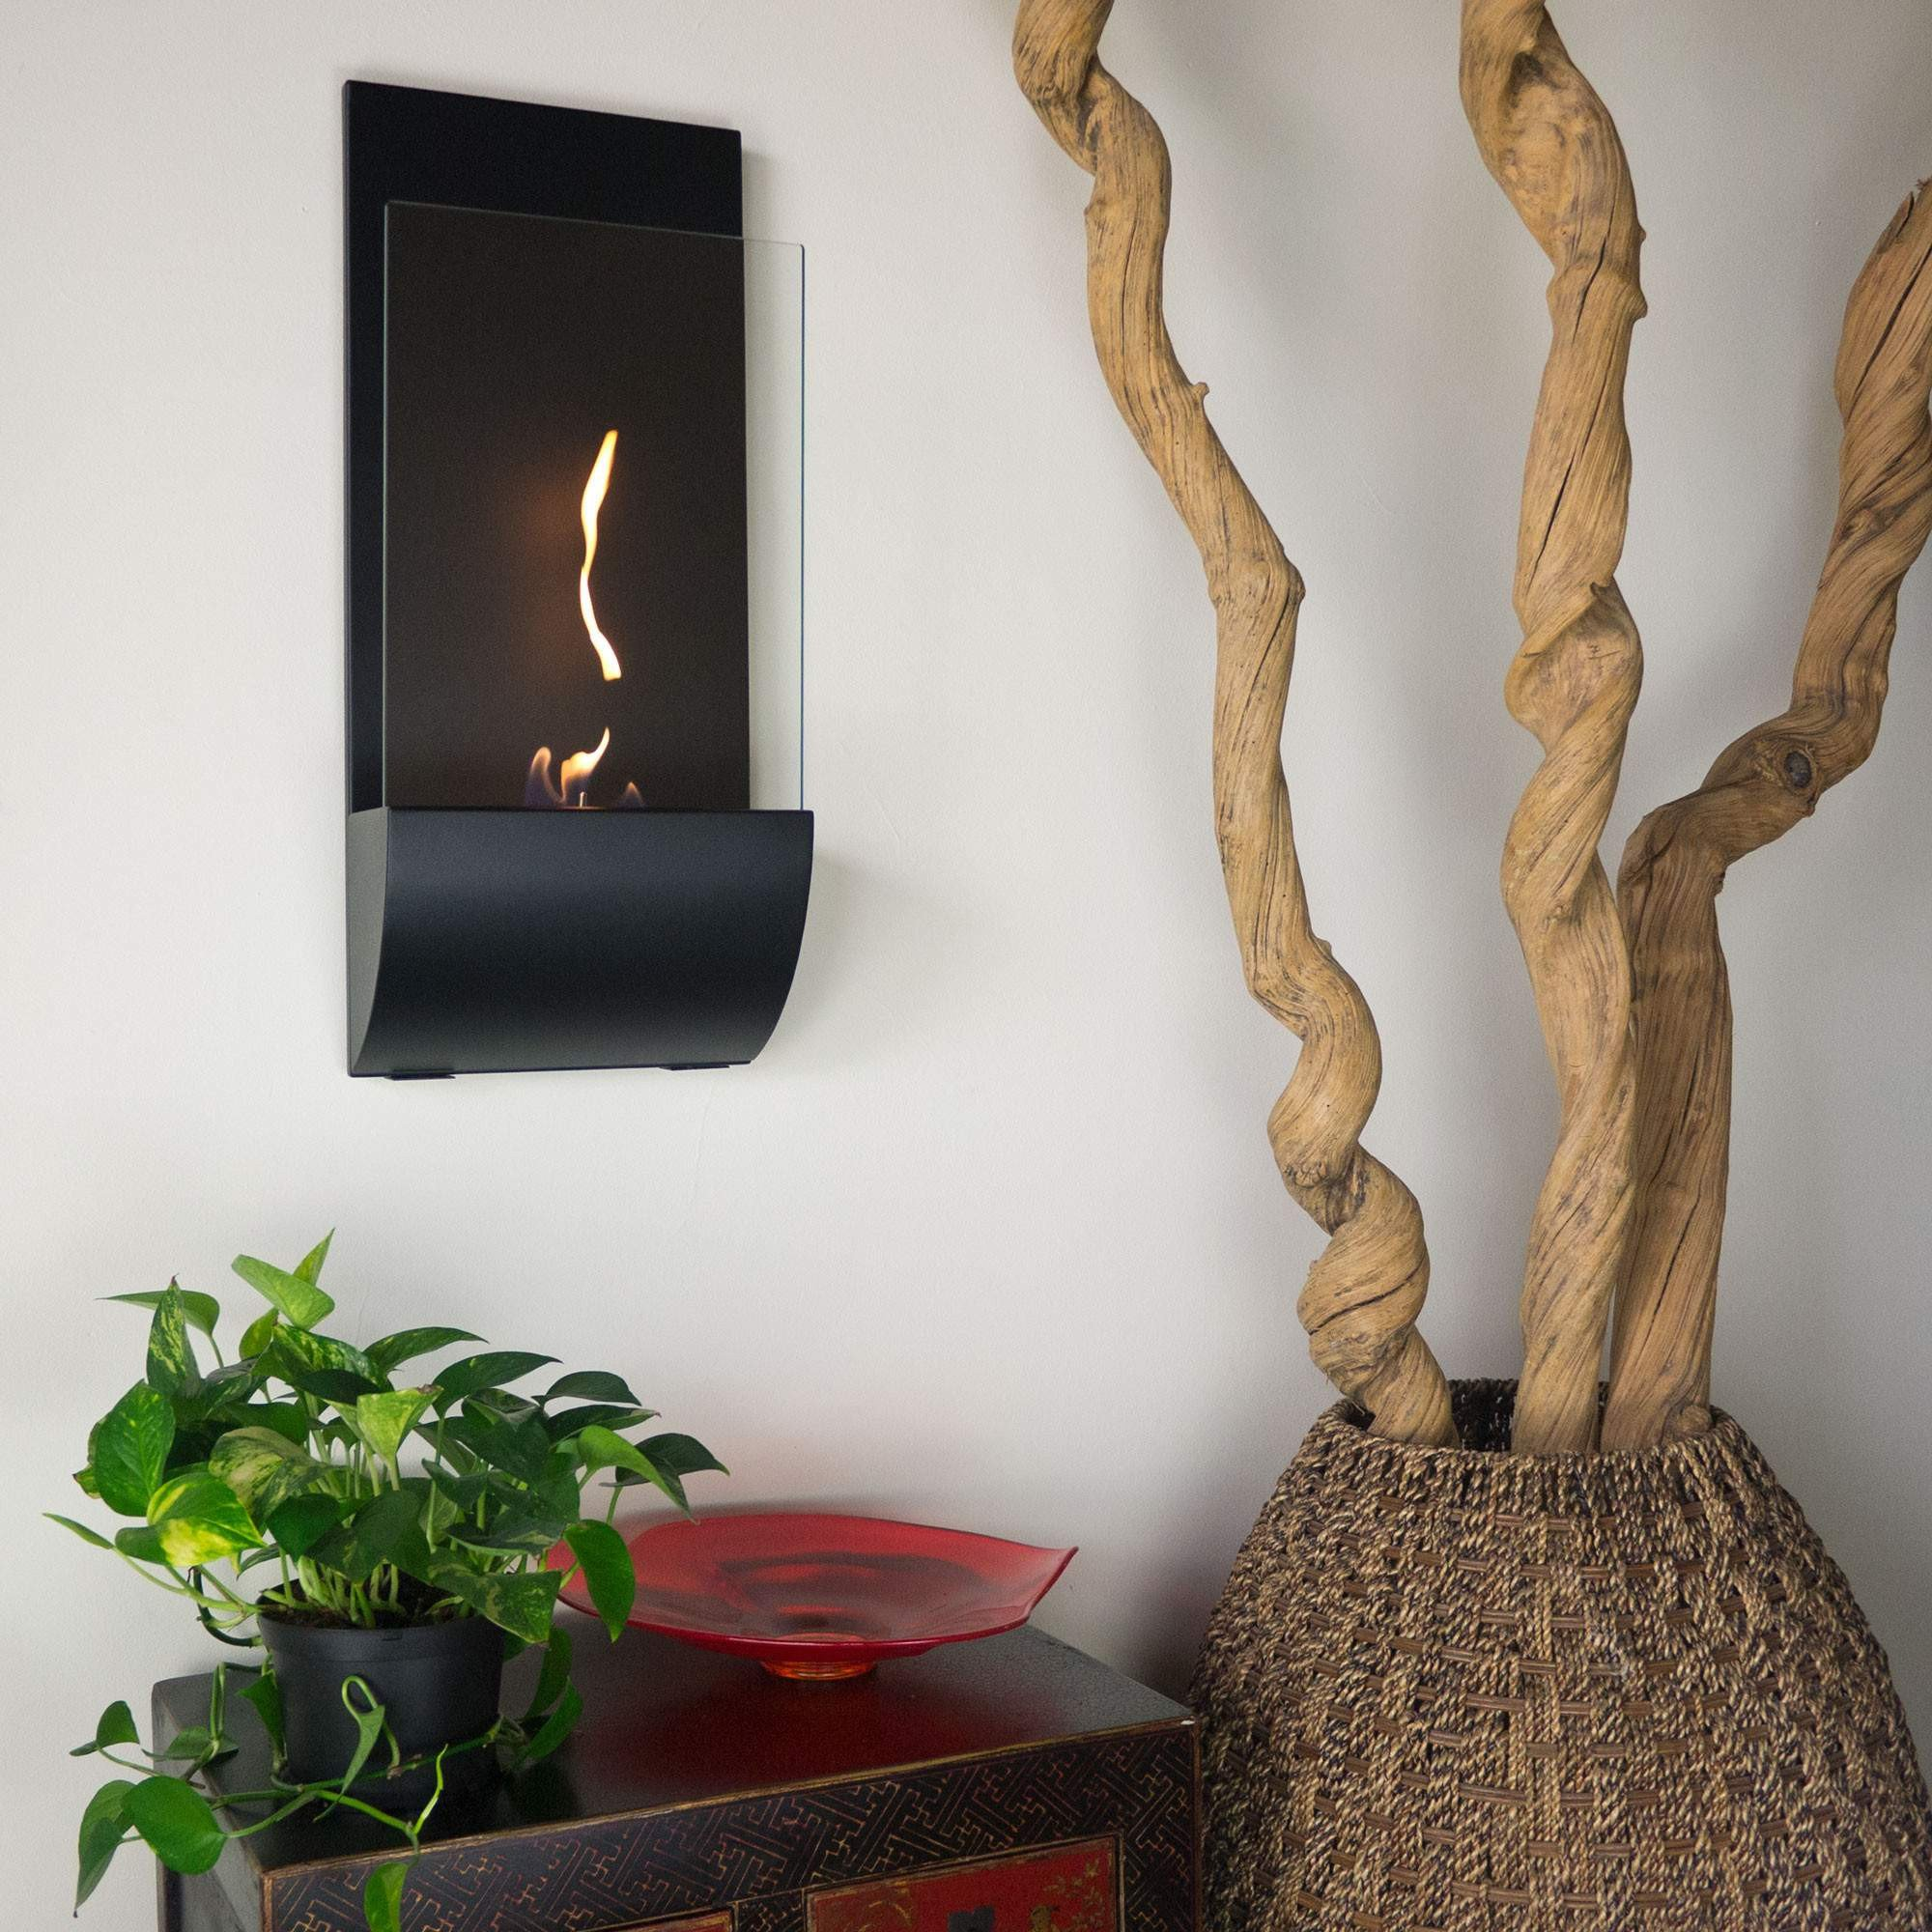 ethanol decoflame new fireplaces pictures made ready mounted wall bio tower product bioethanol fireplace ae york